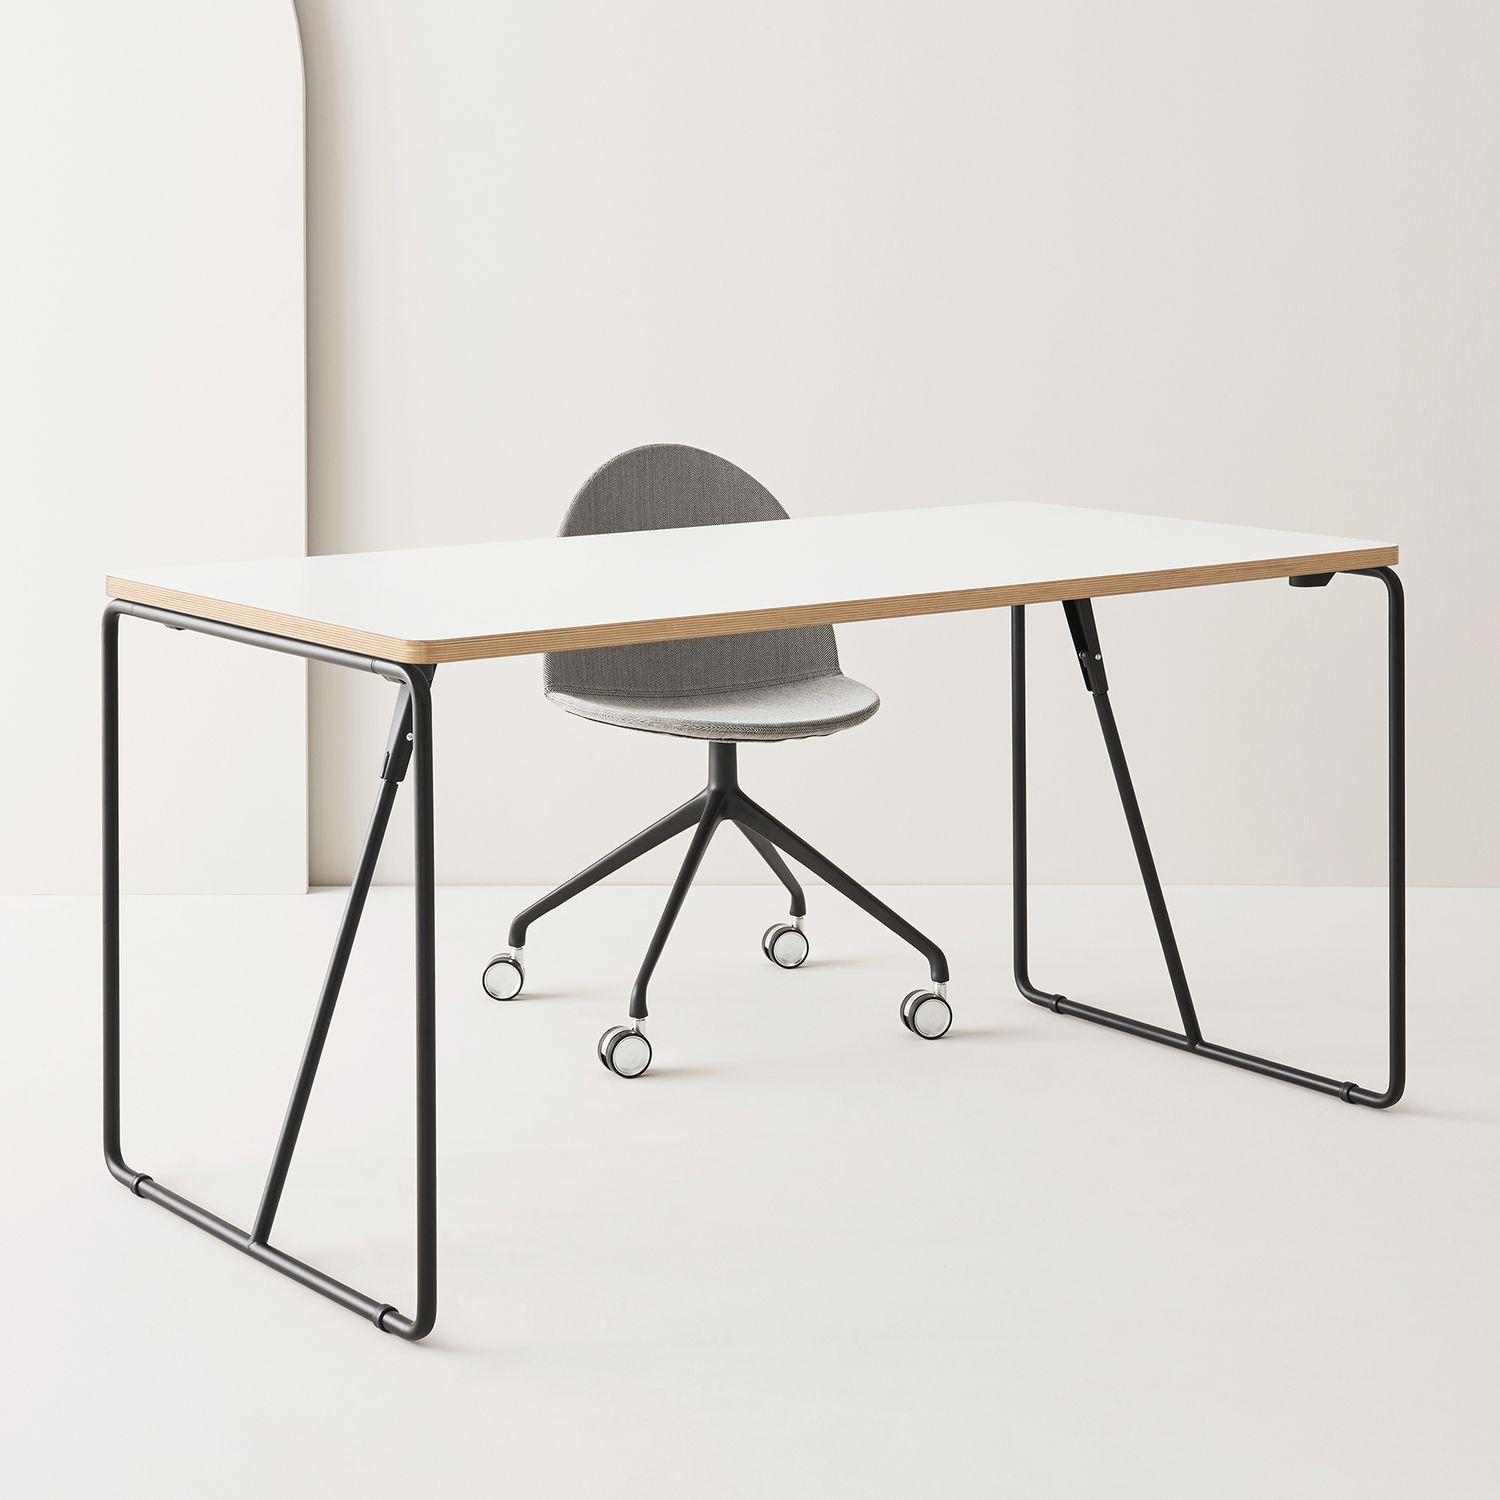 Contemporary boardroom table - FOLD-UP - SEGIS - plywood / steel